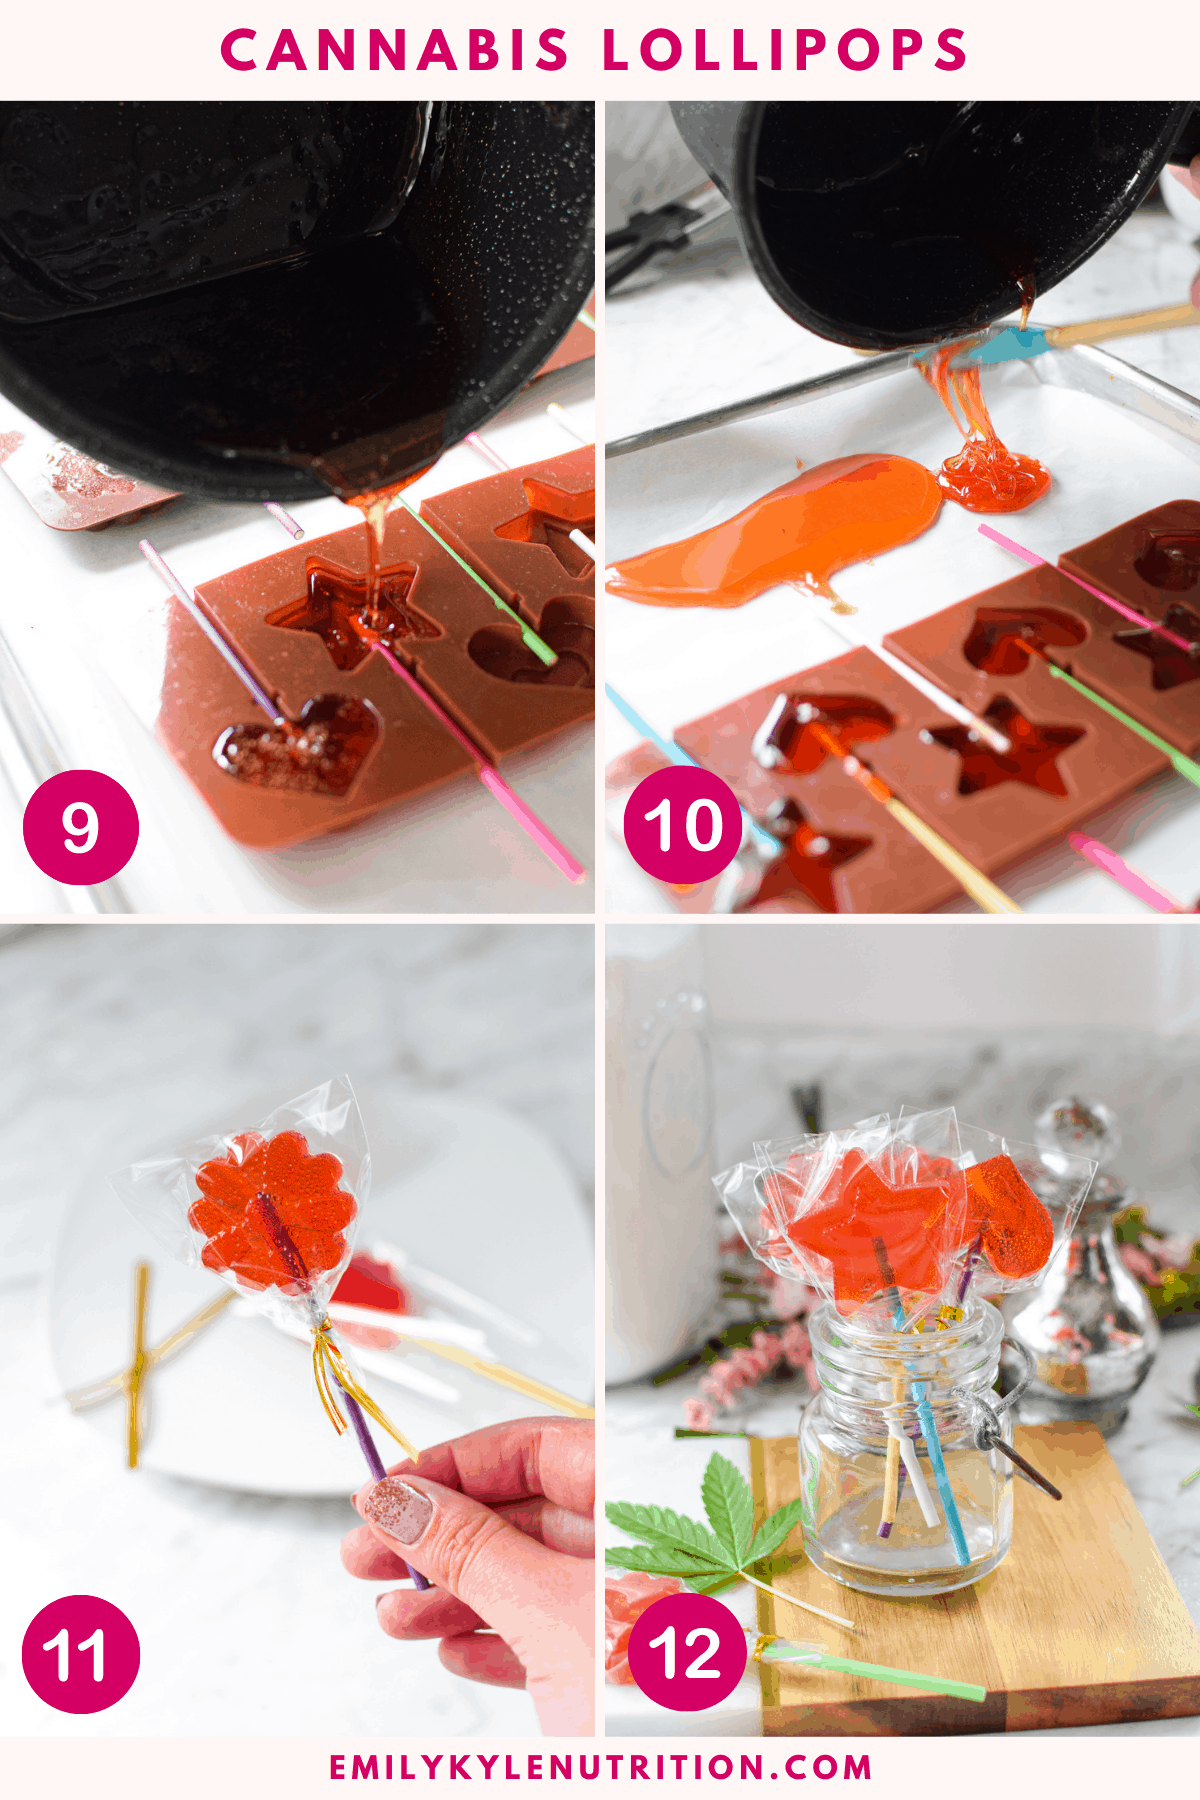 A 4 step collage showing the final 4 steps in making cannabis lollipops including pouring the syrup into molds, pouring extra on a baking sheet, putting the suckers in plastic bags, and a finished image of all suckers in a mason jar